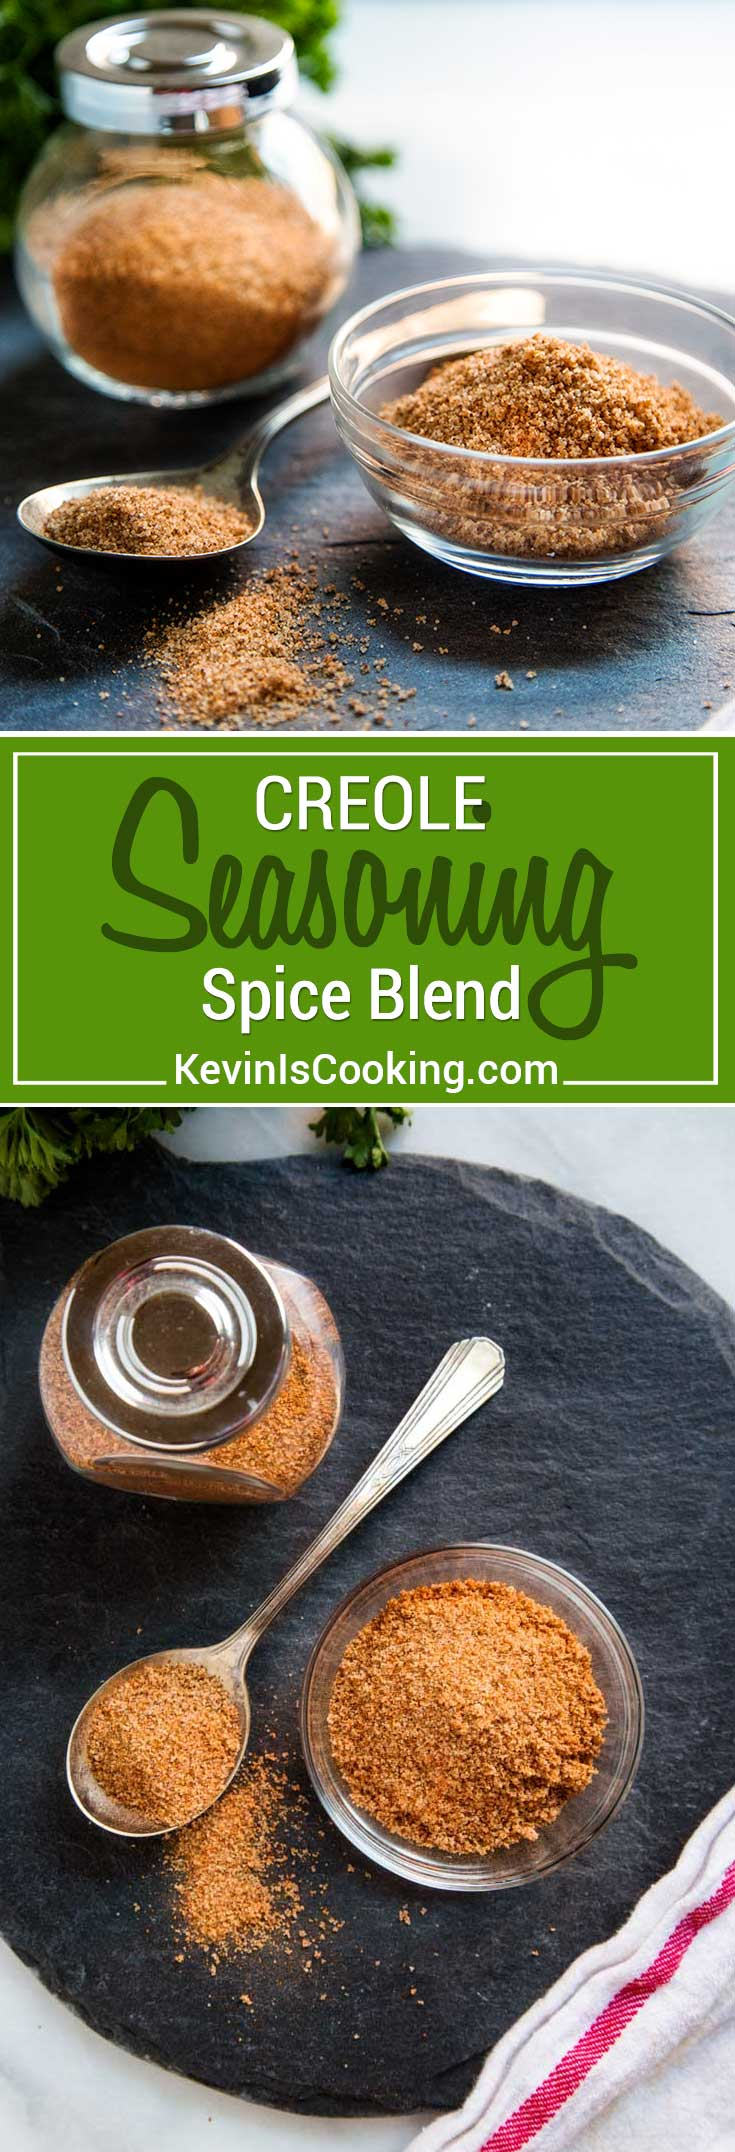 This Creole Seasoning Spice Blend is made with most items already in your spice cabinet without the loaded salt that comes with pre-packaged spice blends.